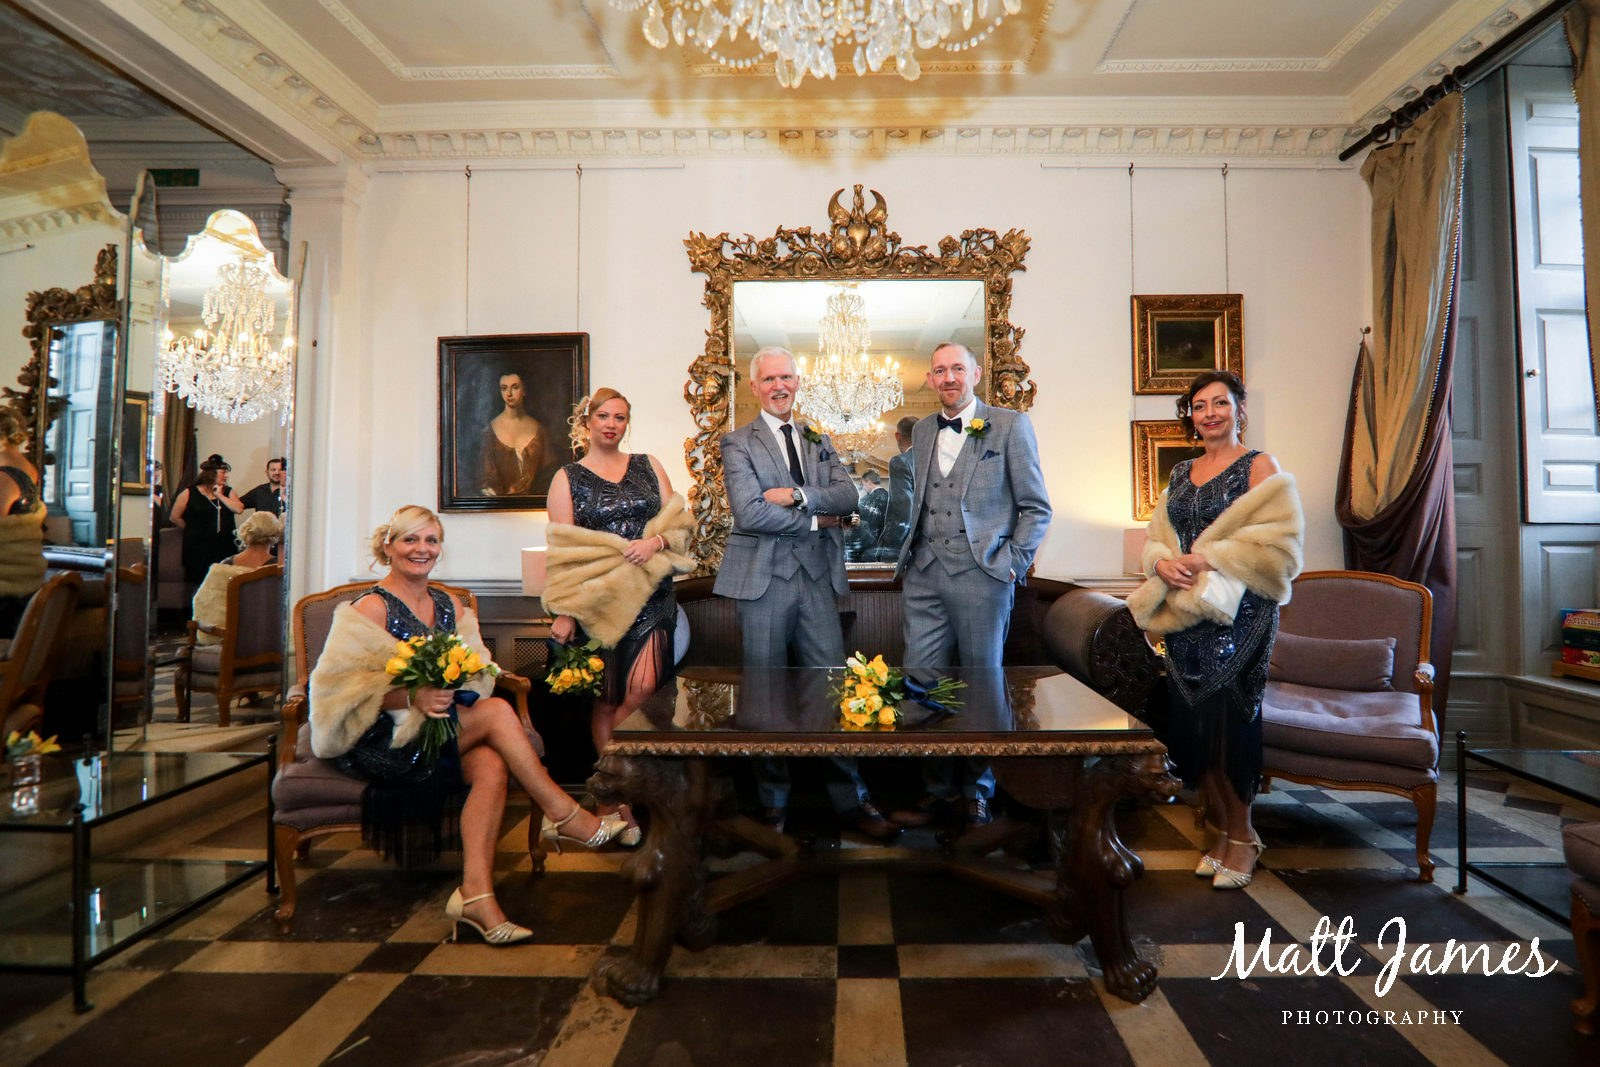 Matt-James-photography-at-Chilston-Manor-8